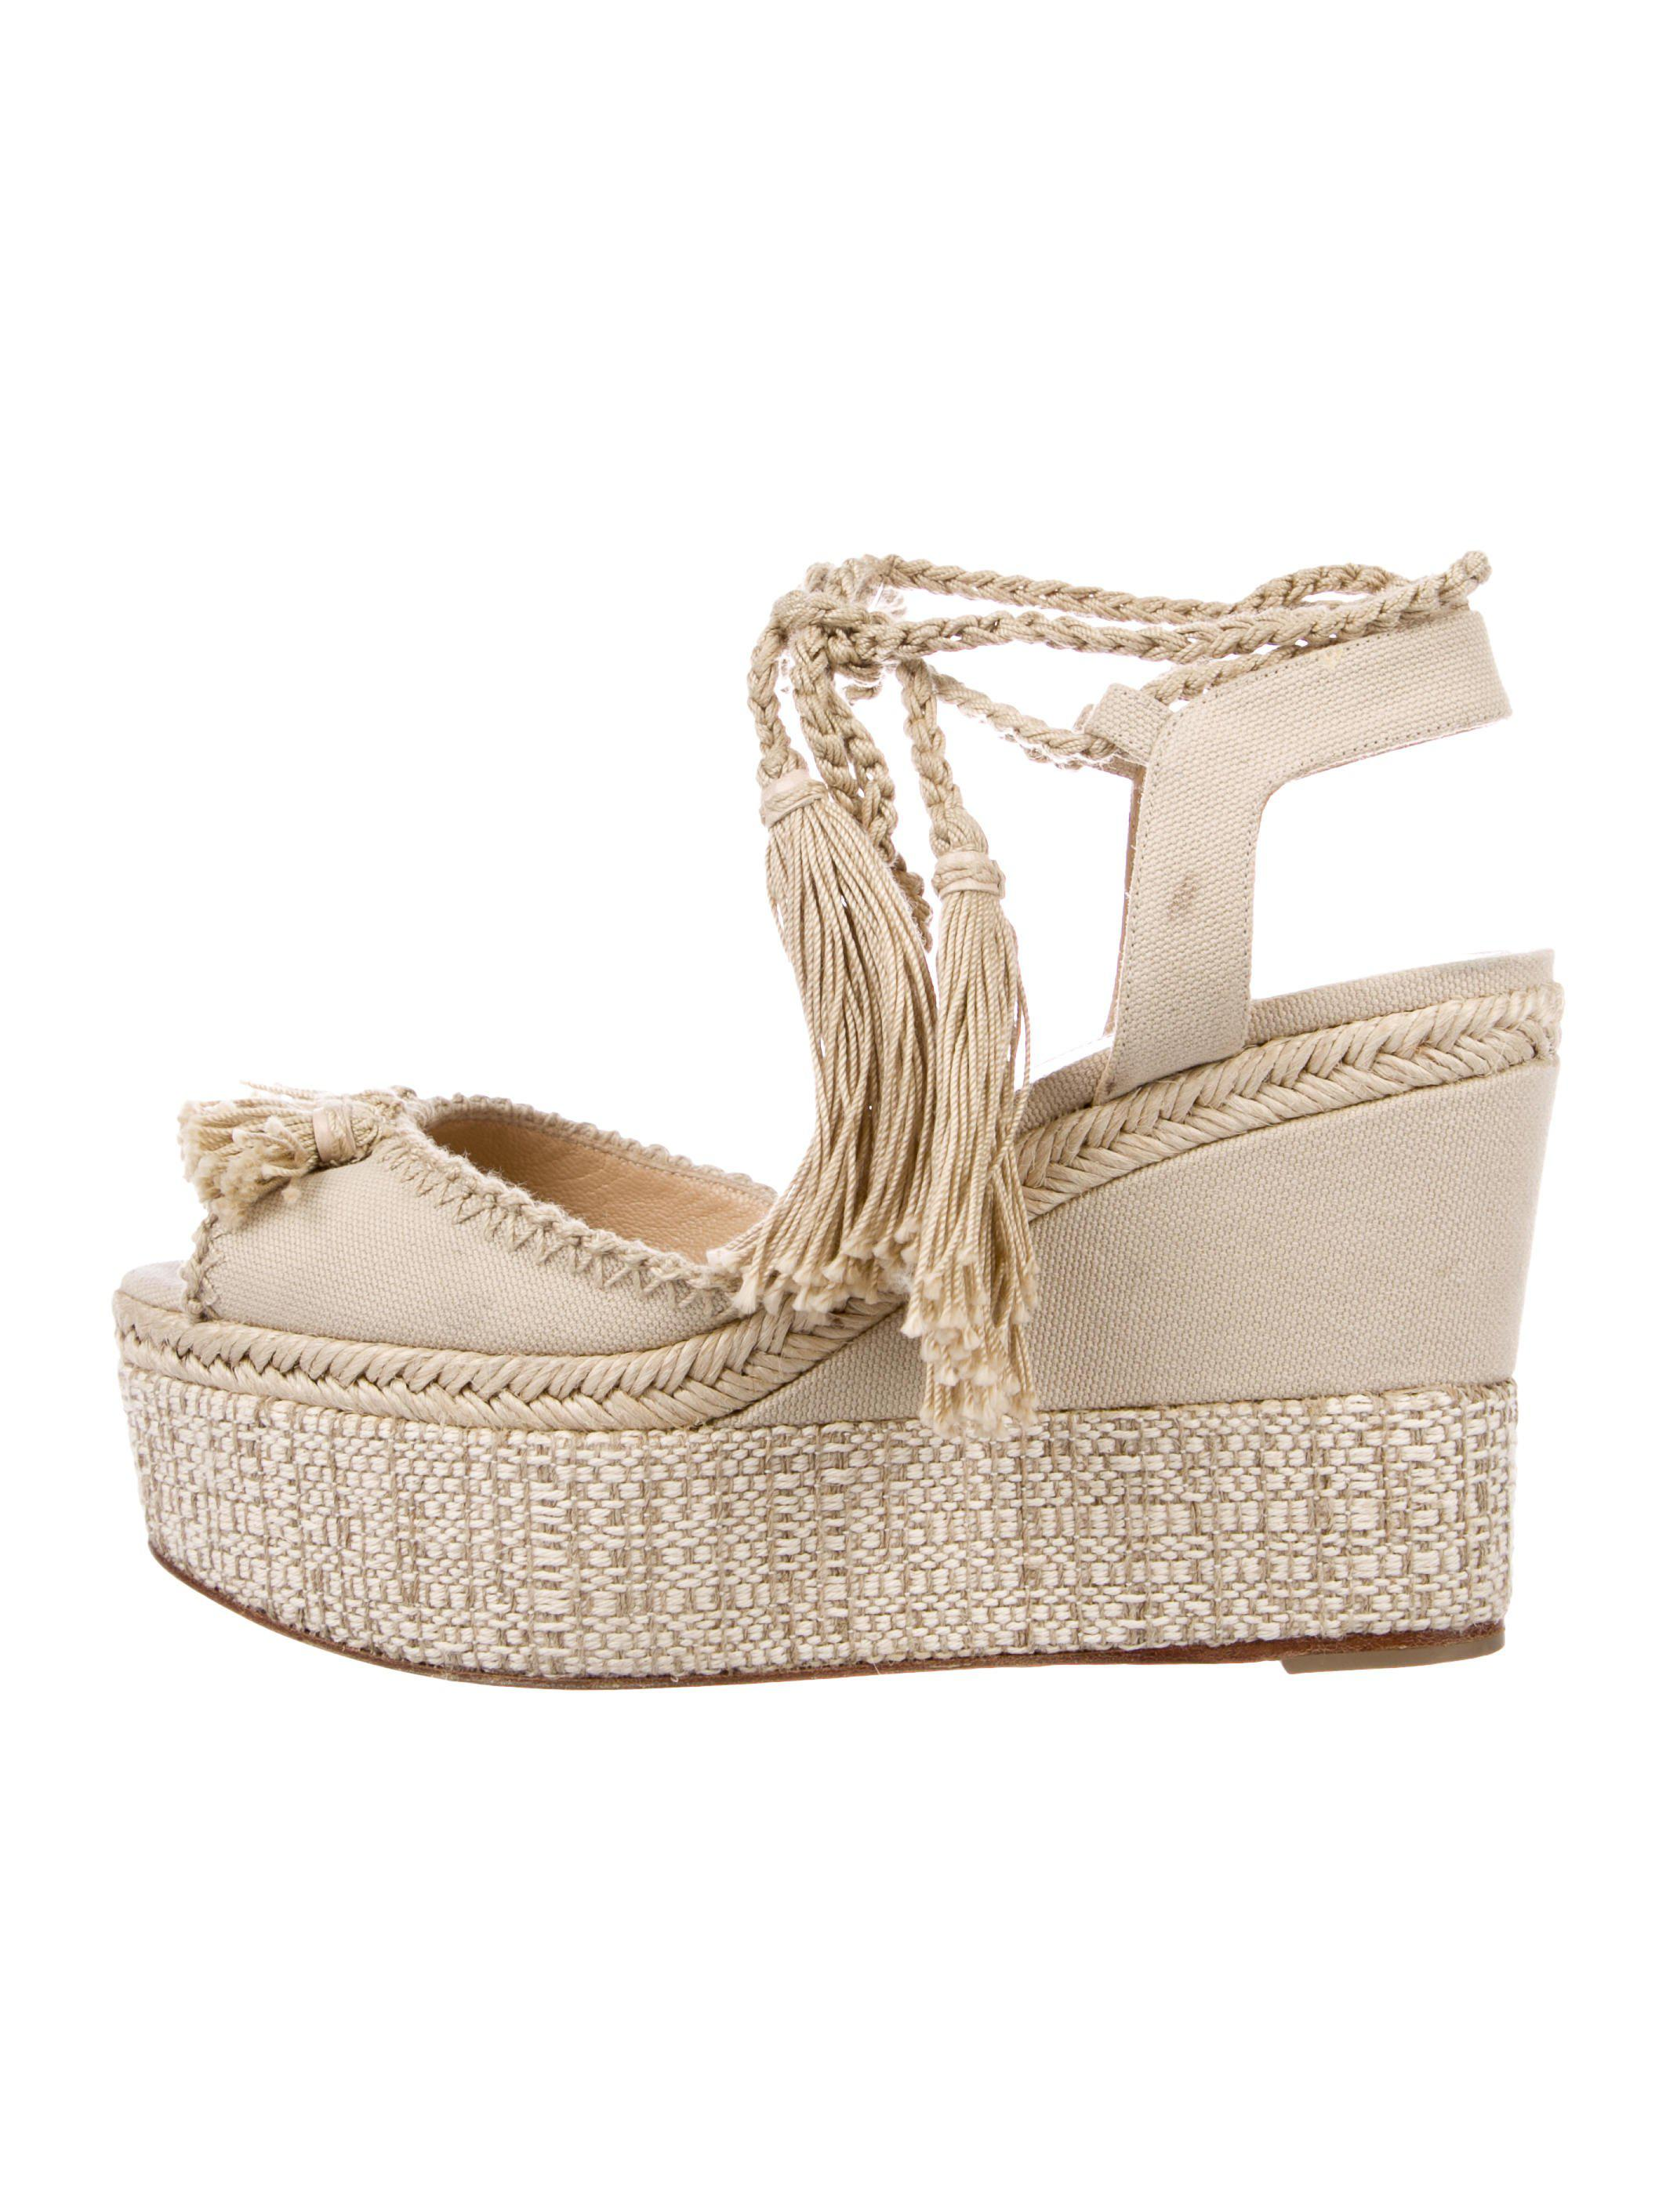 a69e15869668 Lyst - Paul Andrew Braided Wedge Sandals Tan in Natural